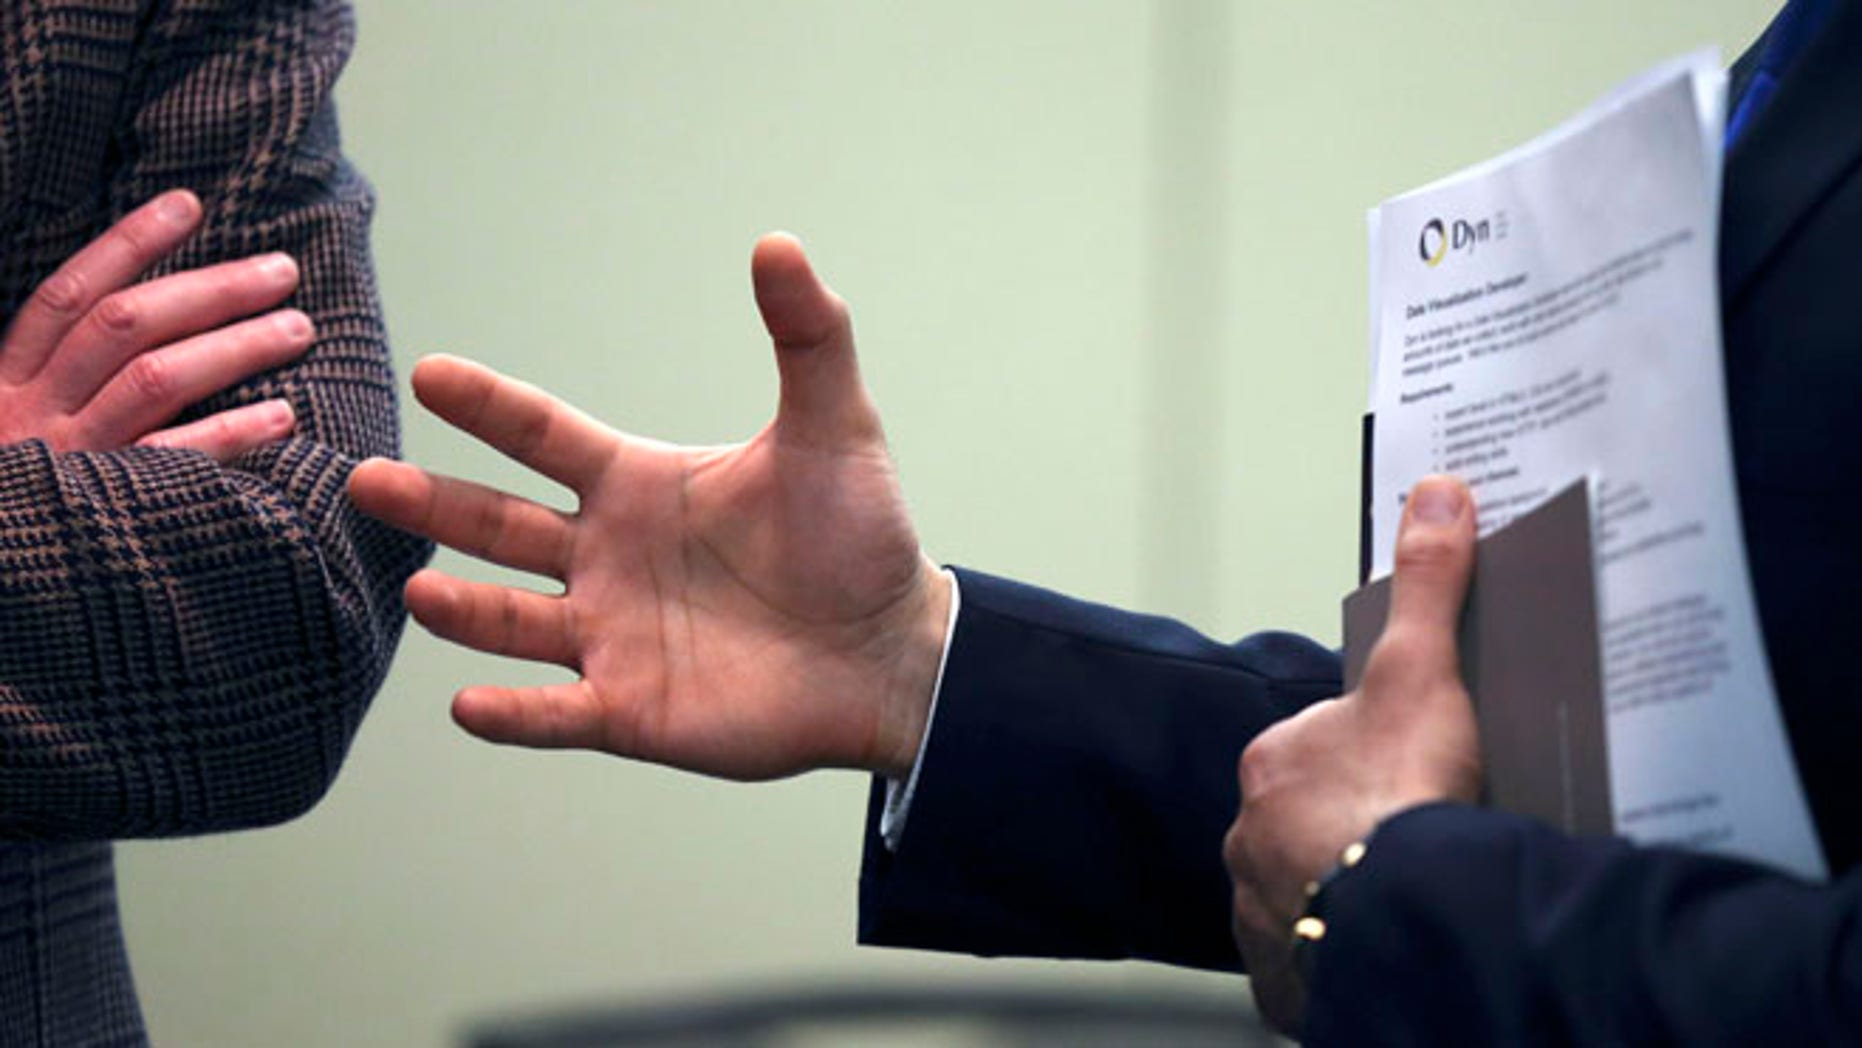 Feb. 25, 2013: A job seeker gestures while speaking to a company representative during a job fair in Boston.